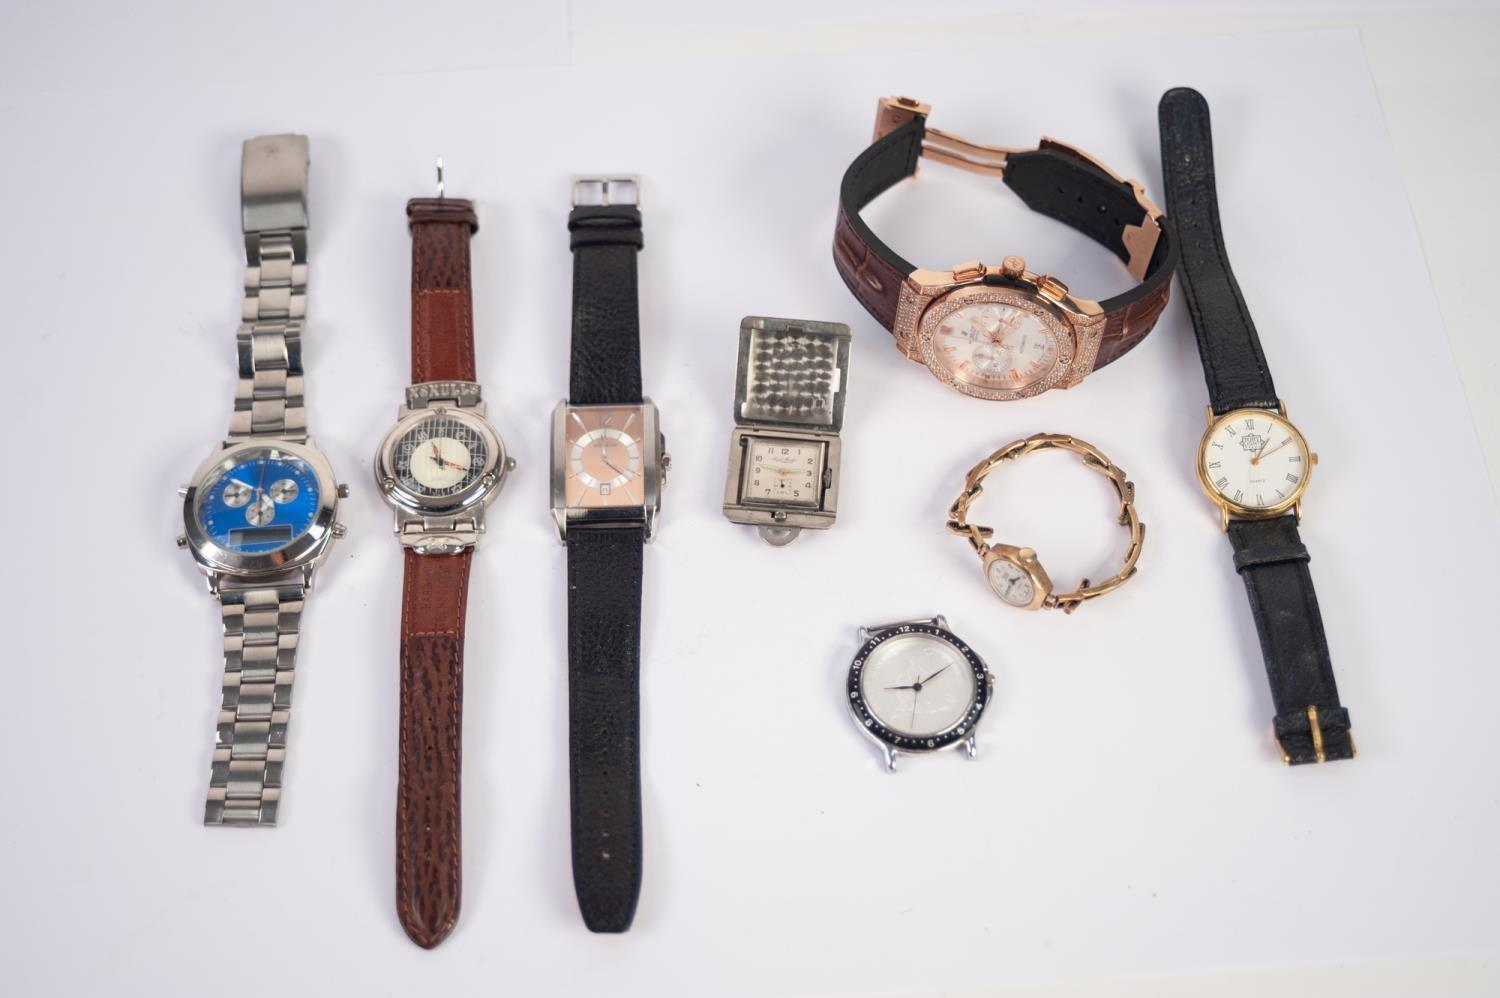 Lot 48 - A SELECTION OF WRISTWATCHES To include a ladies 9ct gold cased Rone wristwatch, a Paul Buhre